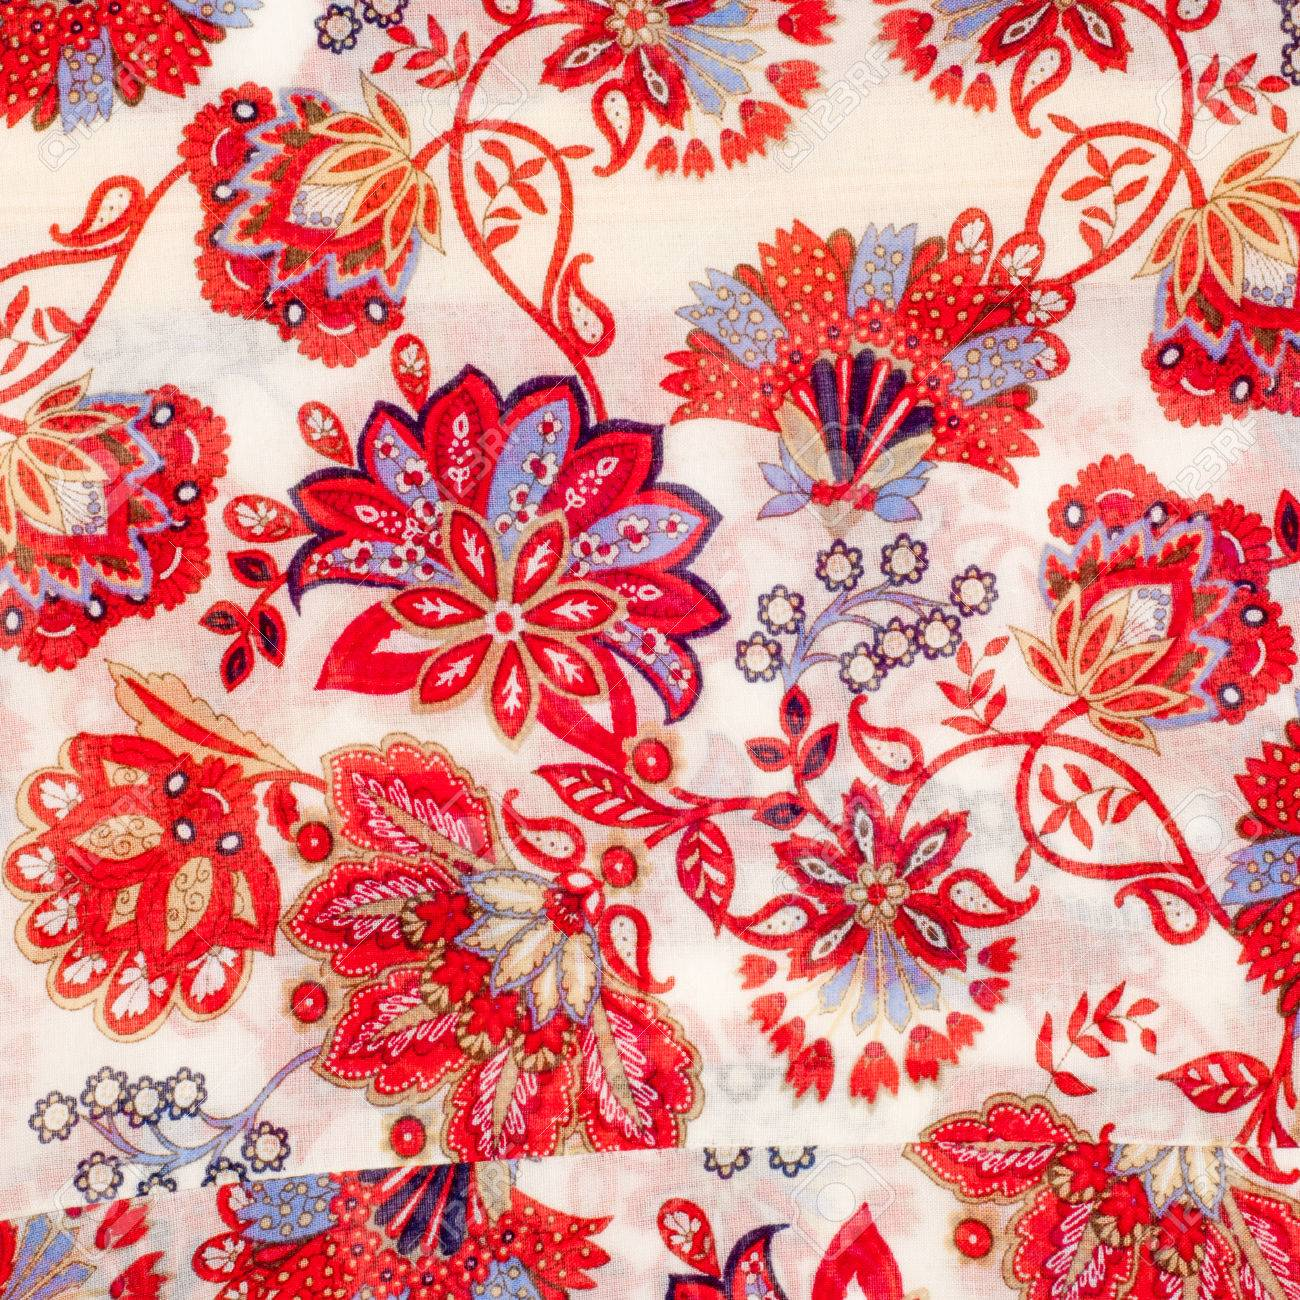 The Texture Of The Silk Fabric Red Flowers On A White Background